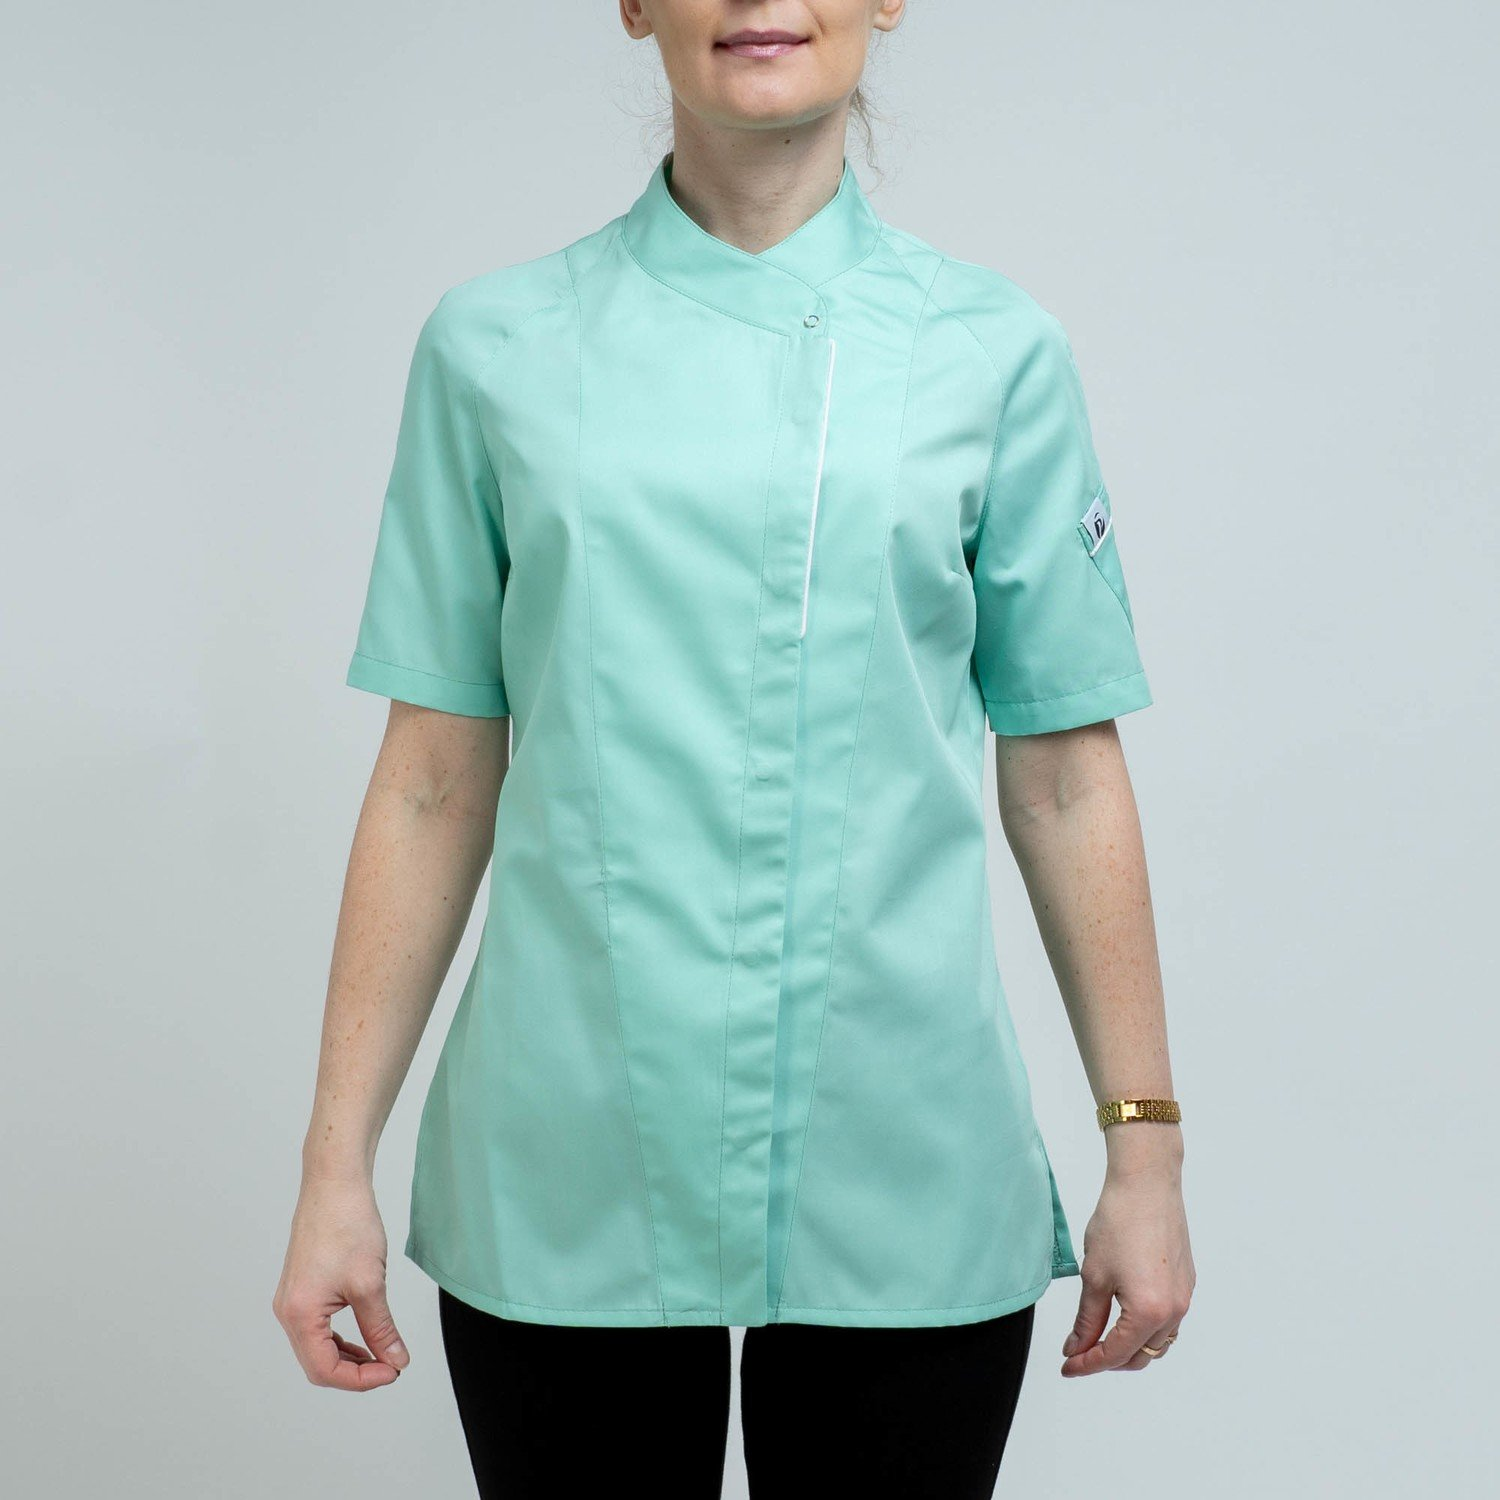 531MINT - CHEF'S JACKET